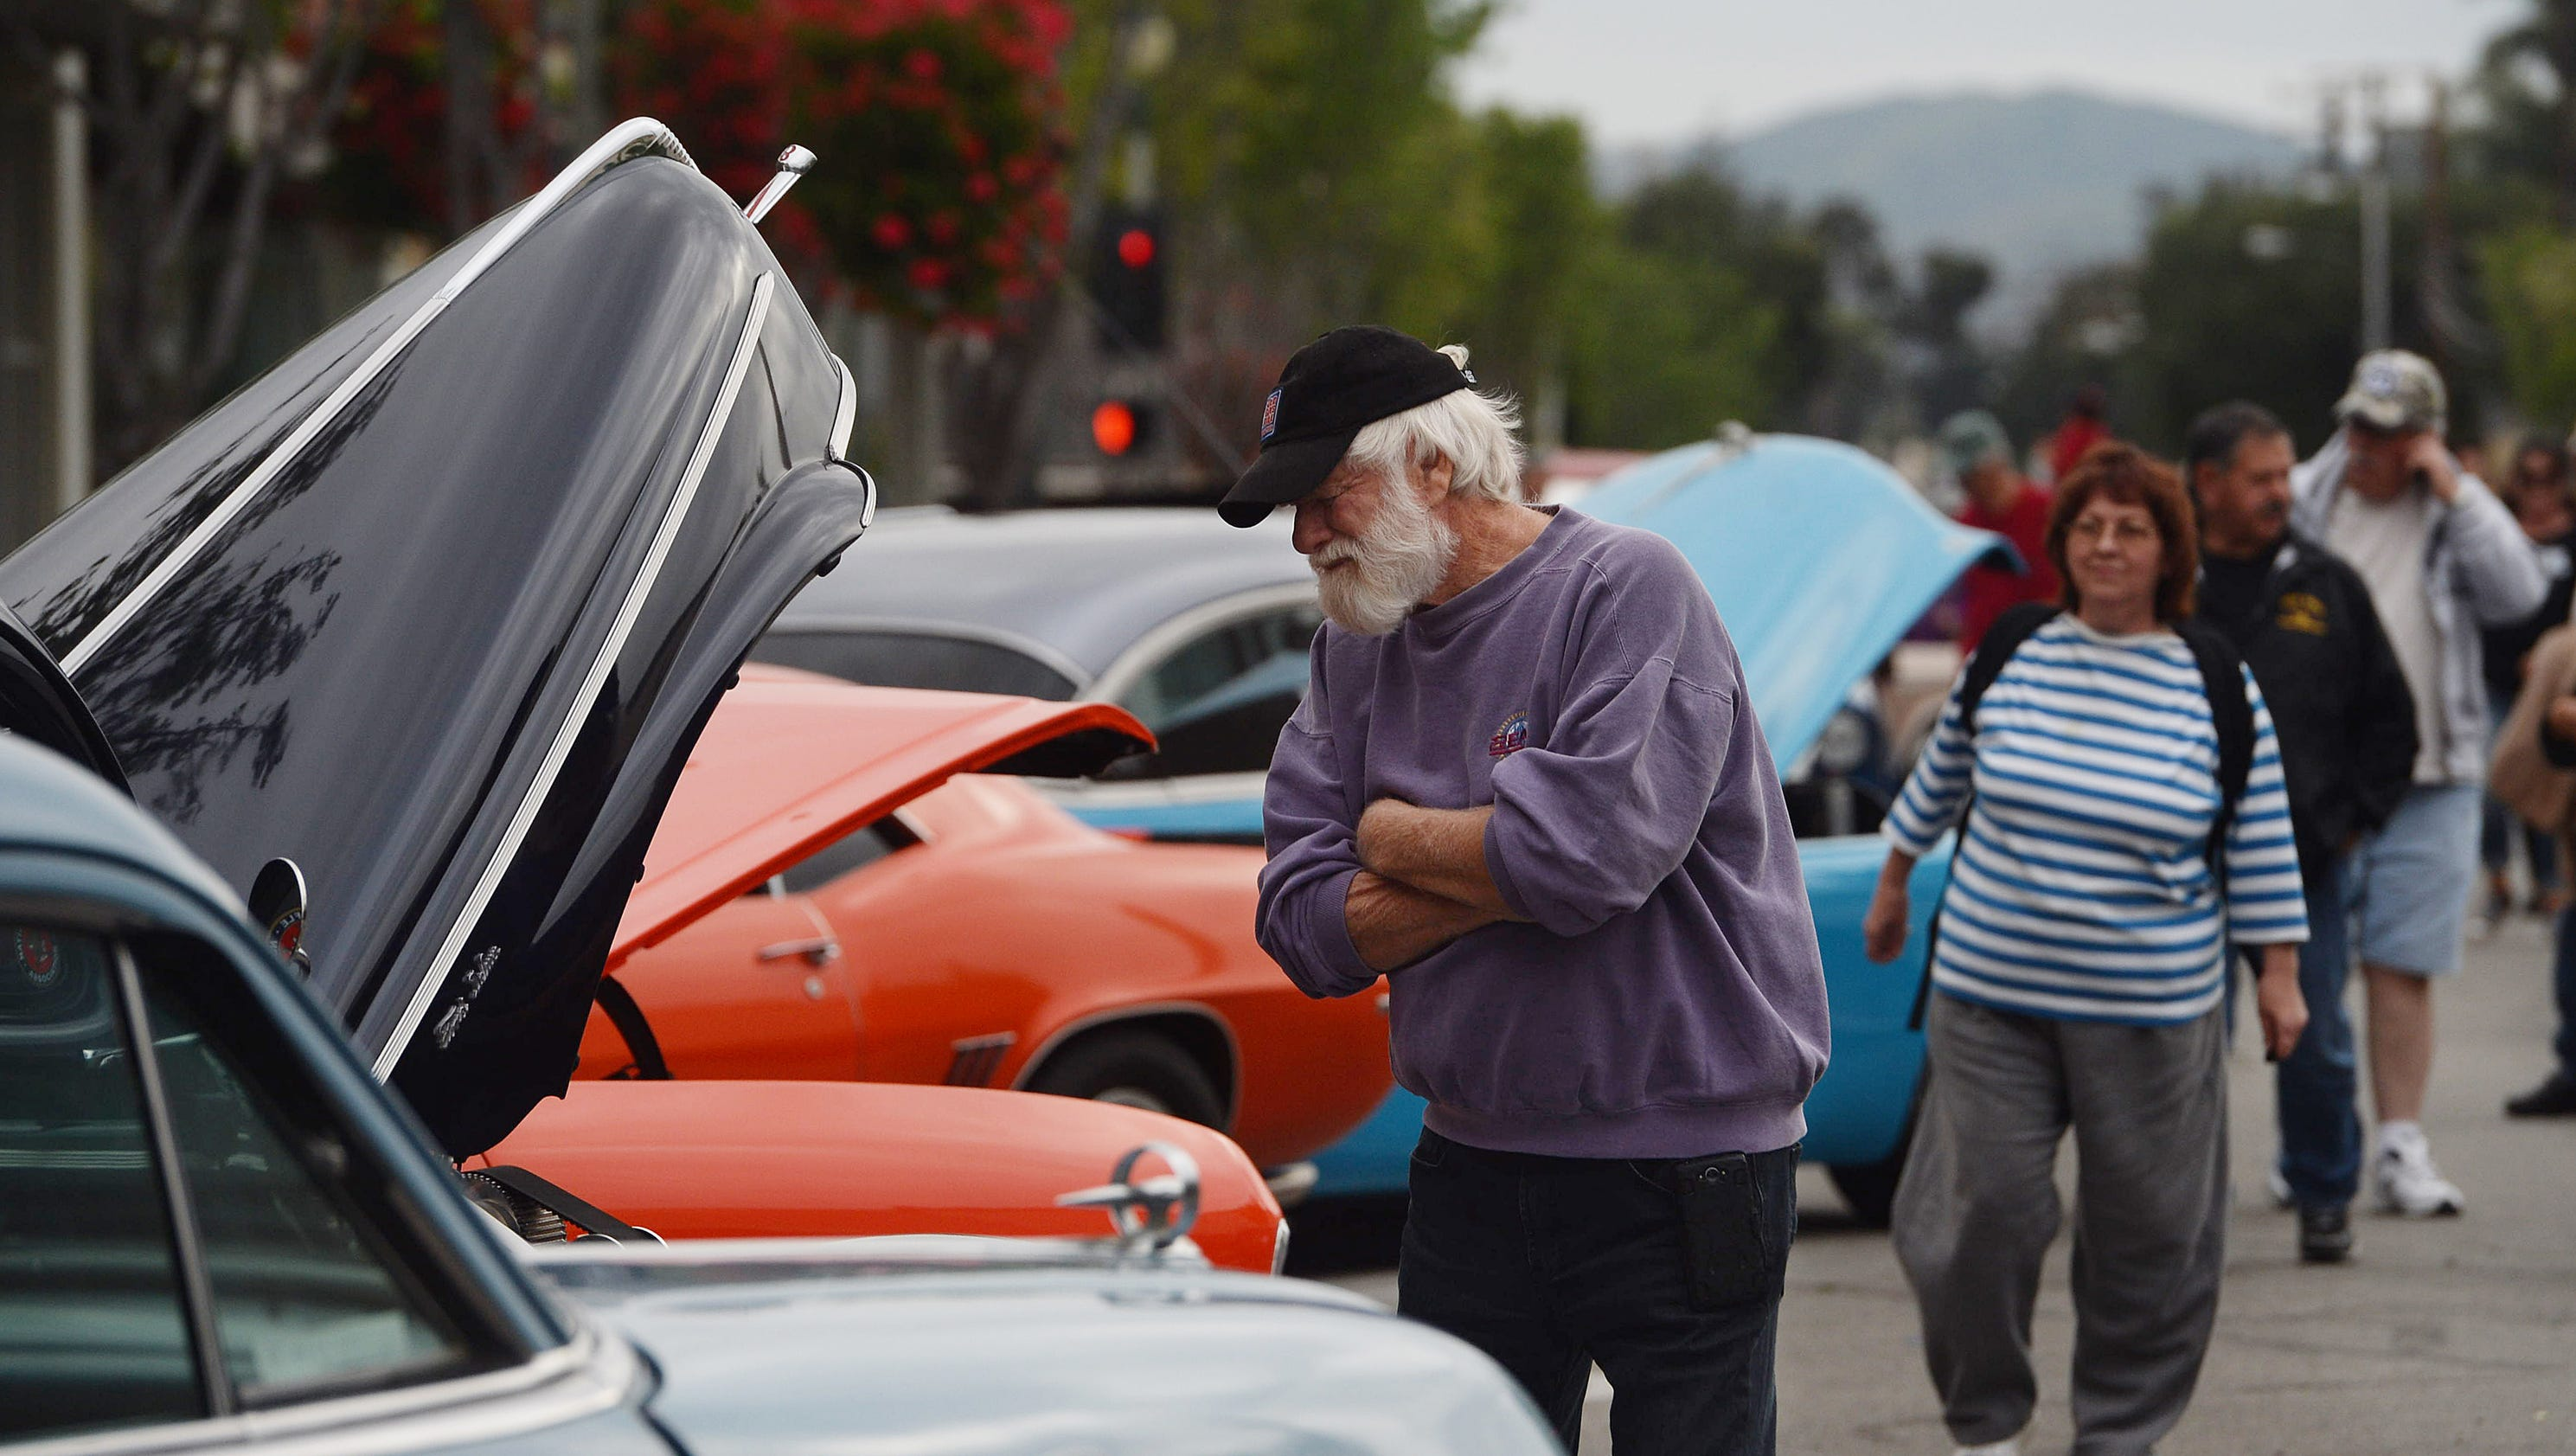 santa paula chat Mingle2 is the place to meet santa paula singles there are thousands of men and women looking for love or friendship in santa paula, california our free online dating site & mobile apps are full of single women and men in santa paula looking for serious relationships, a little online flirtation, or new friends to go out with.